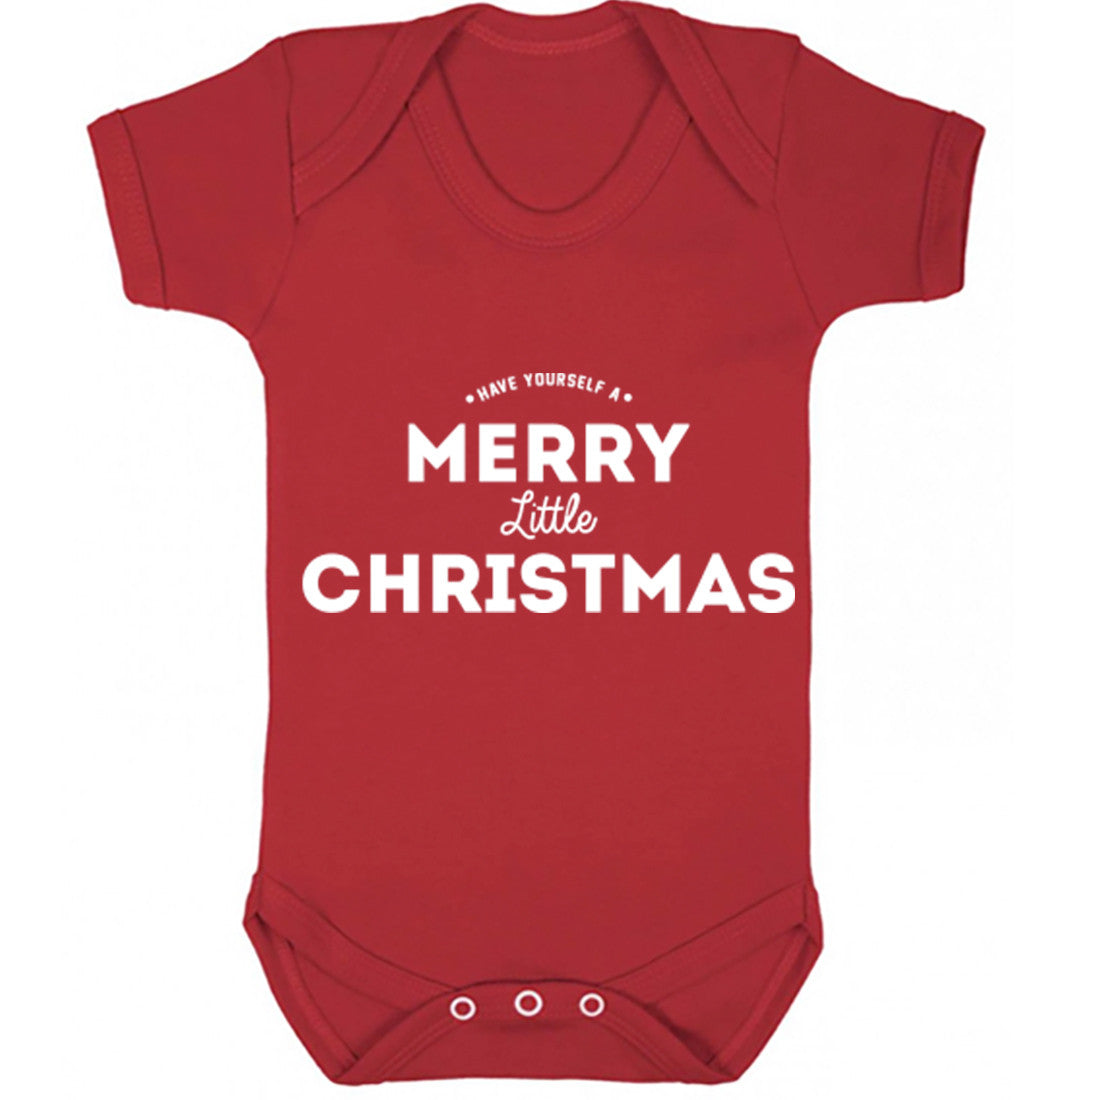 Have Yourself A Merry Little Christmas Baby Vest K0141 - Illustrated Identity Ltd.